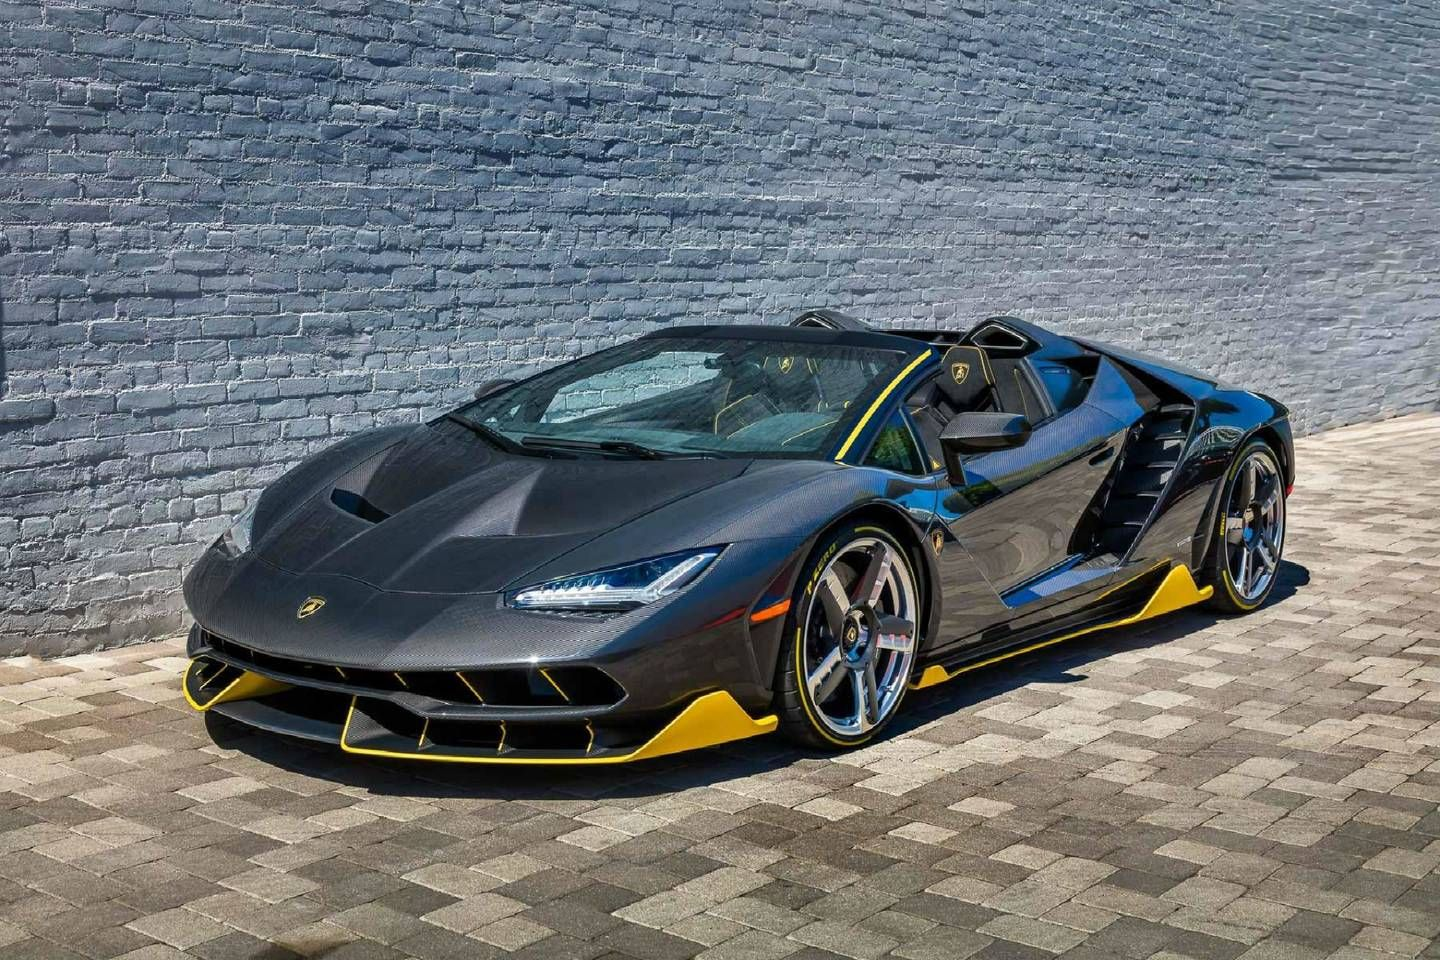 Image Result For Lamborghini Centenario With Images